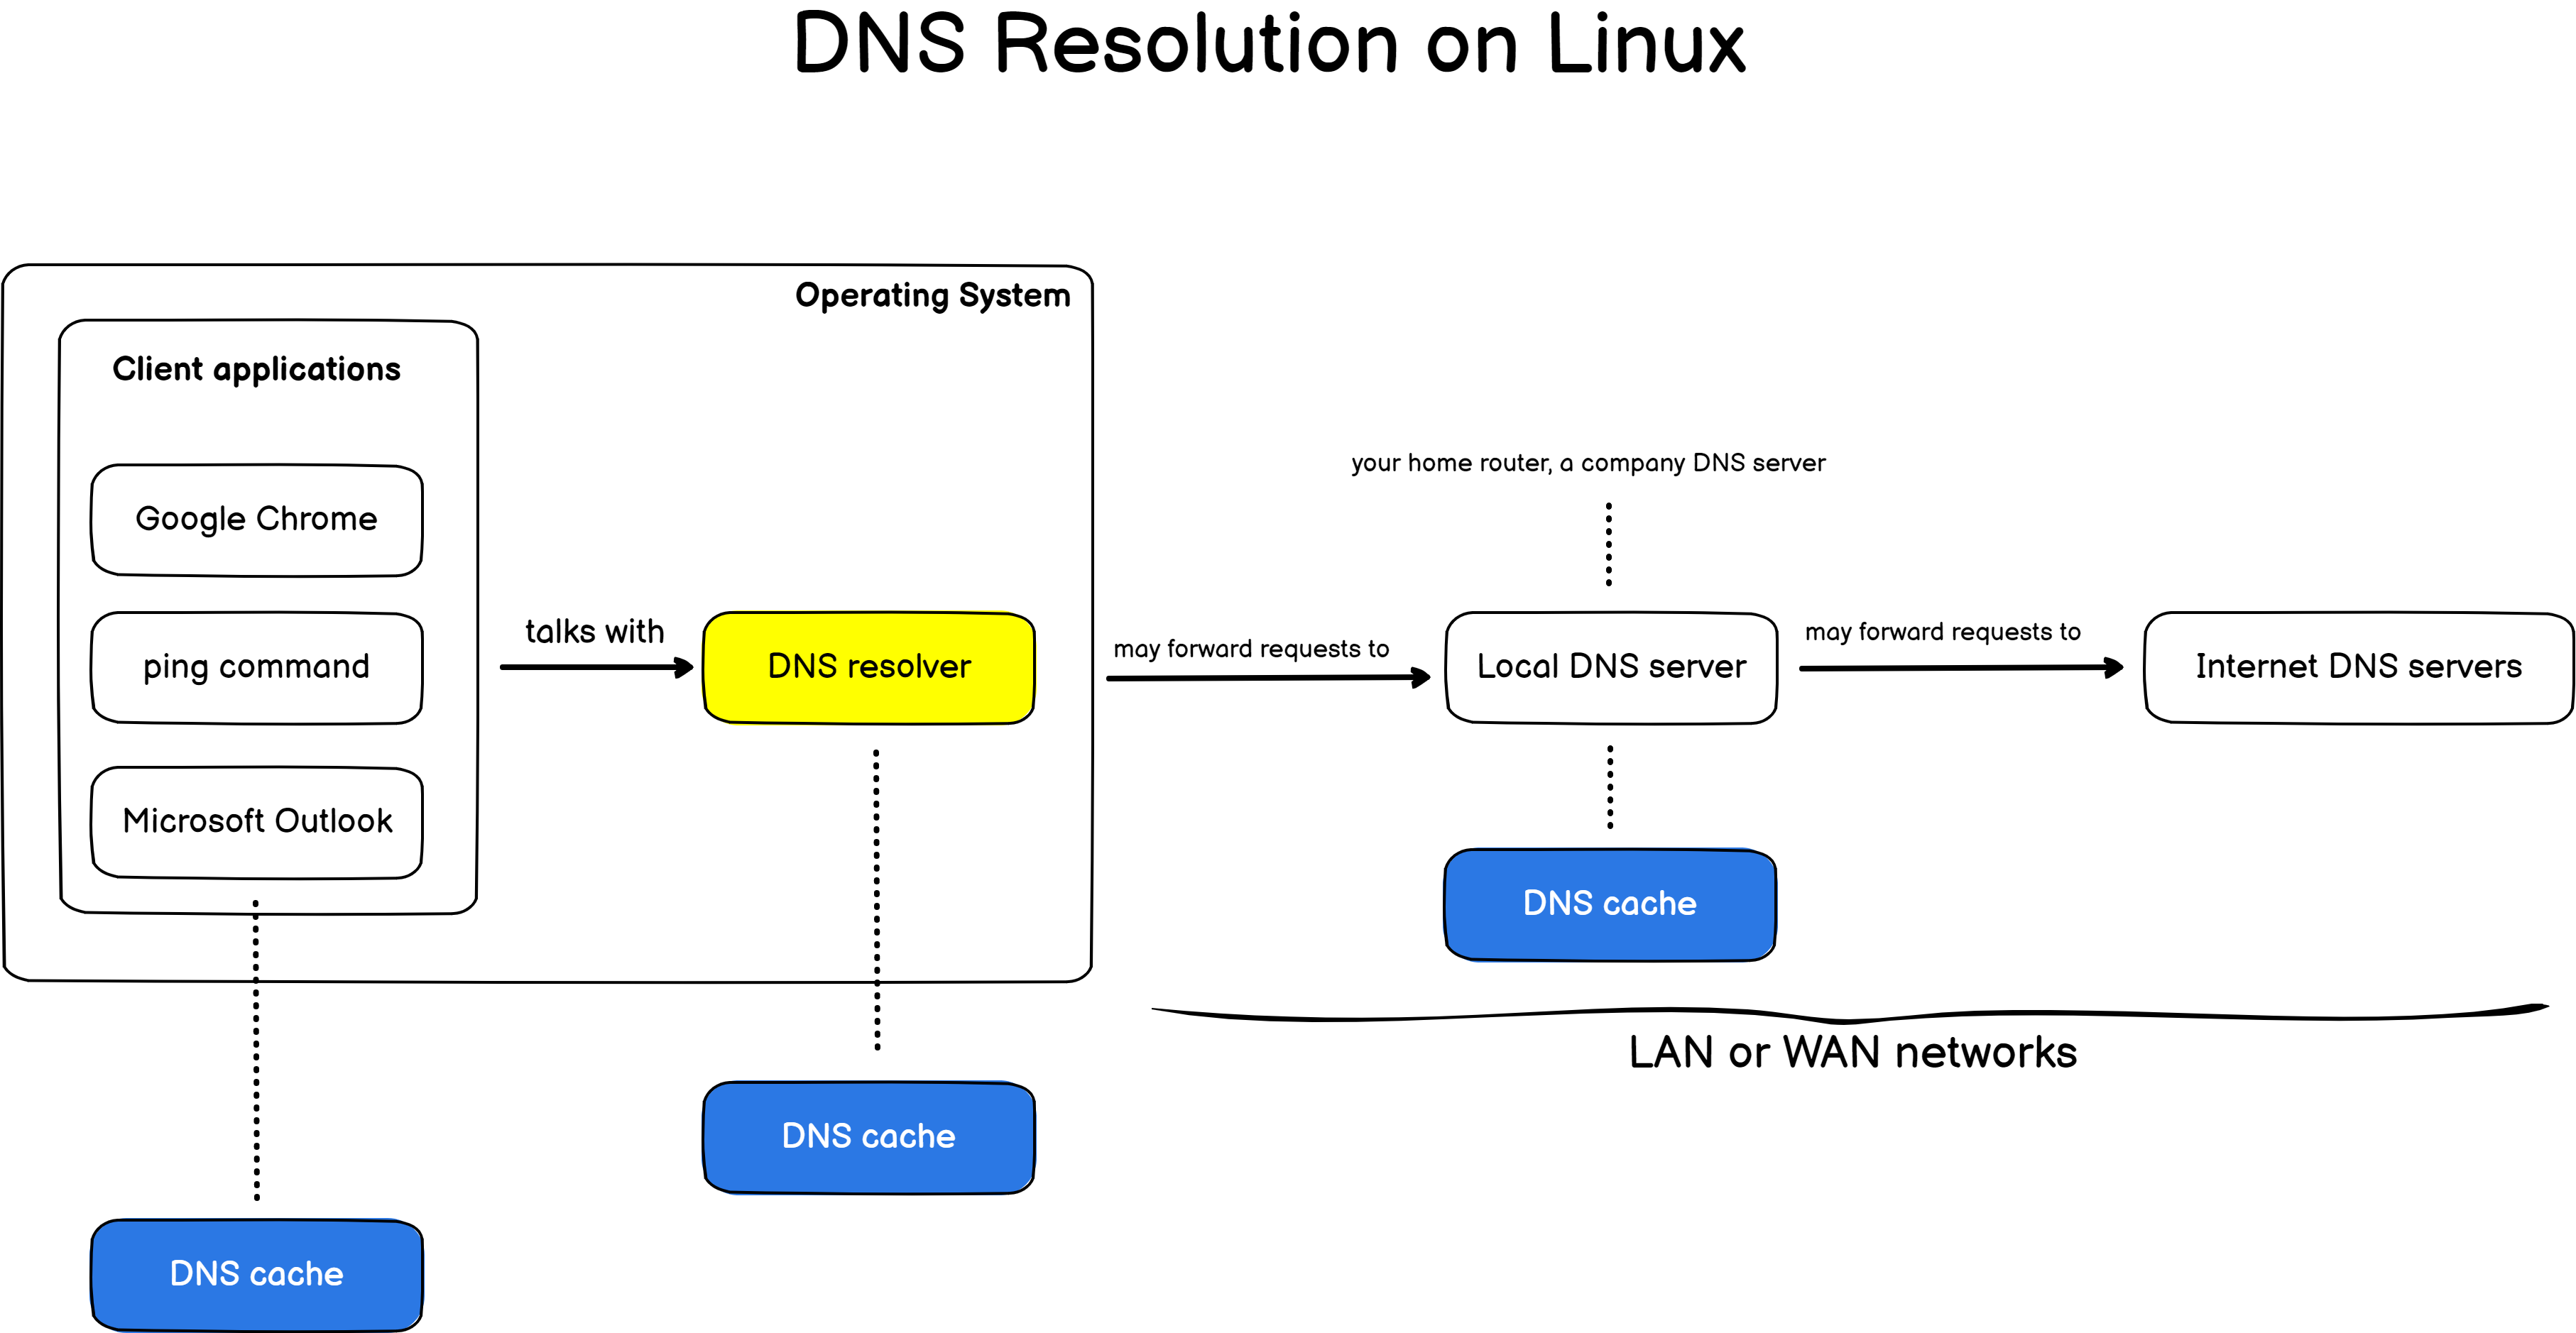 dns resolution on linux